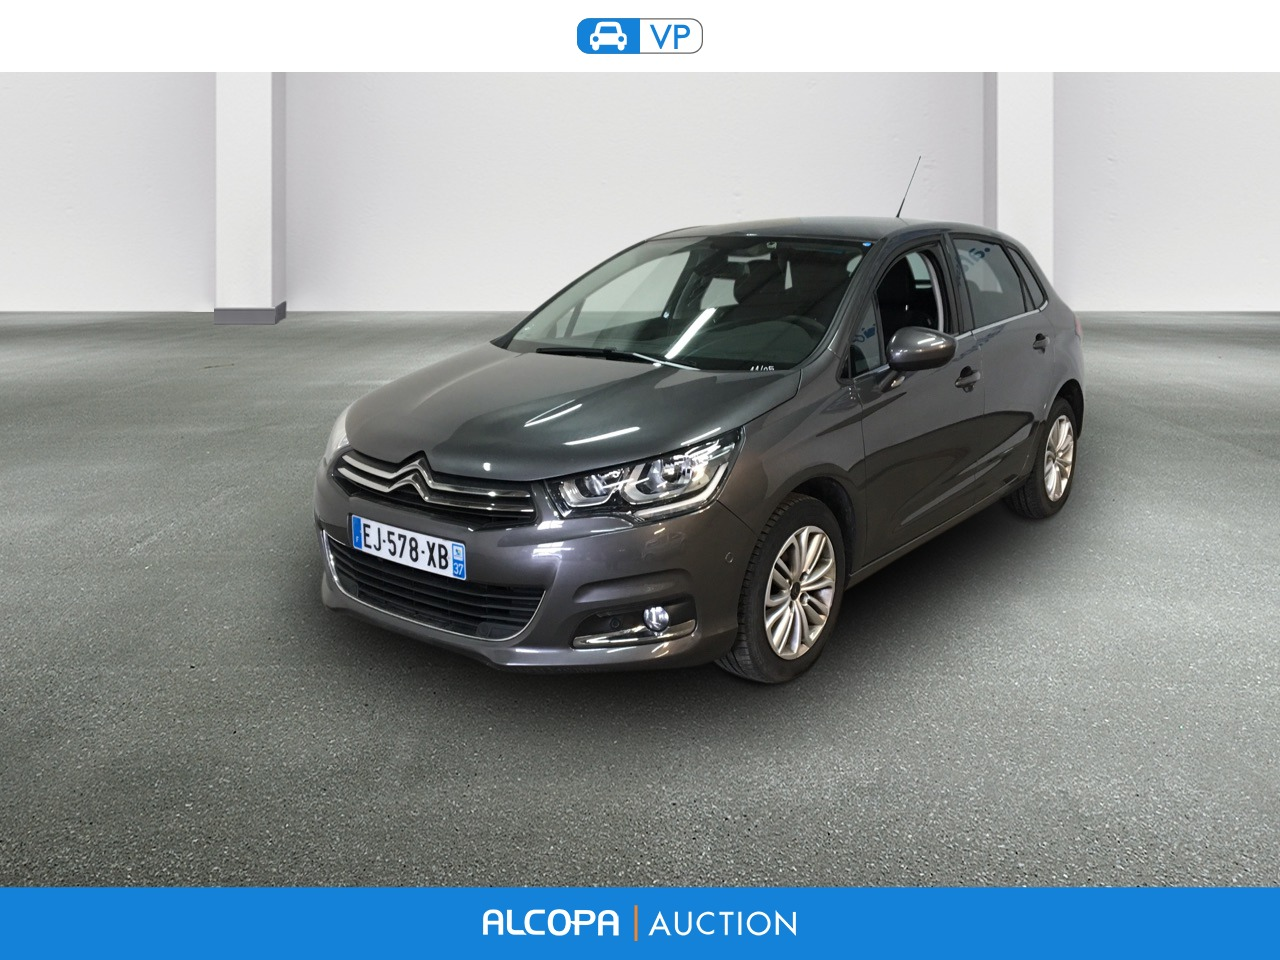 citroen c4 business 01 2015 c4 bluehdi 120 s s eat6 millenium business alcopa auction. Black Bedroom Furniture Sets. Home Design Ideas